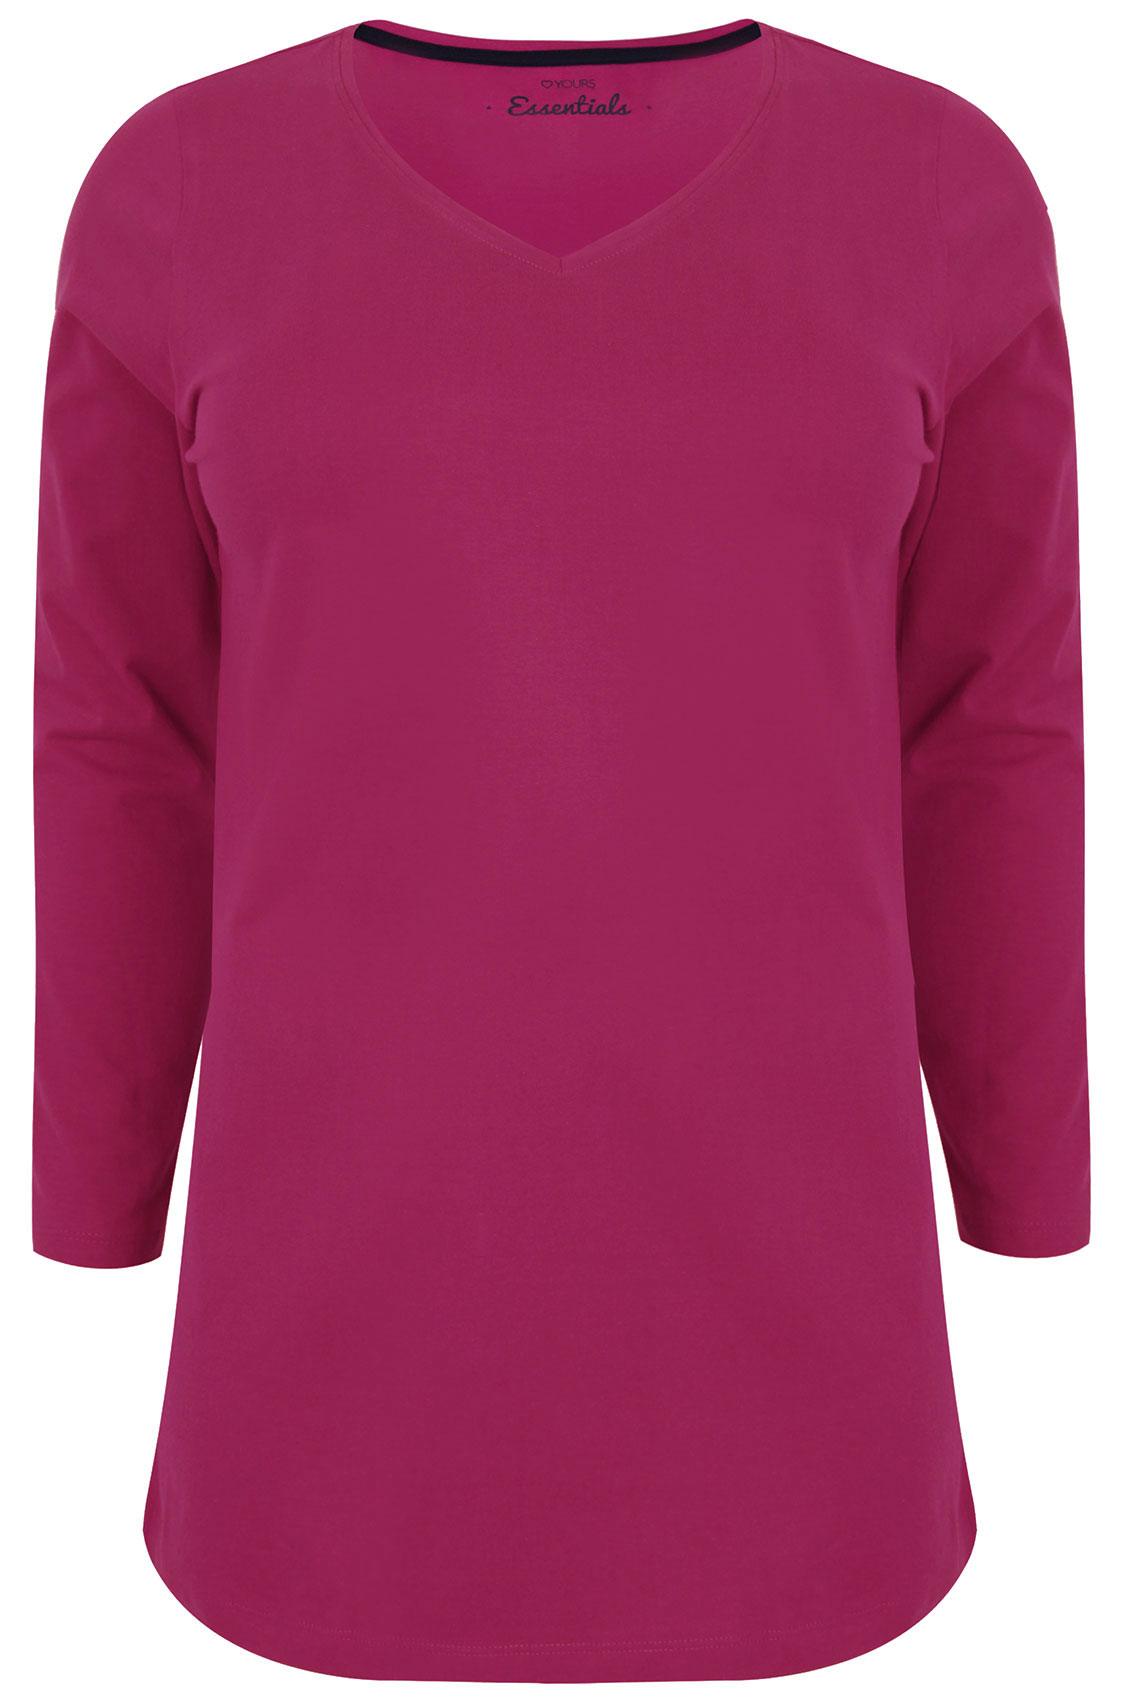 Pink Long Sleeve V-Neck Plain T-Shirt plus Size 16 to 36